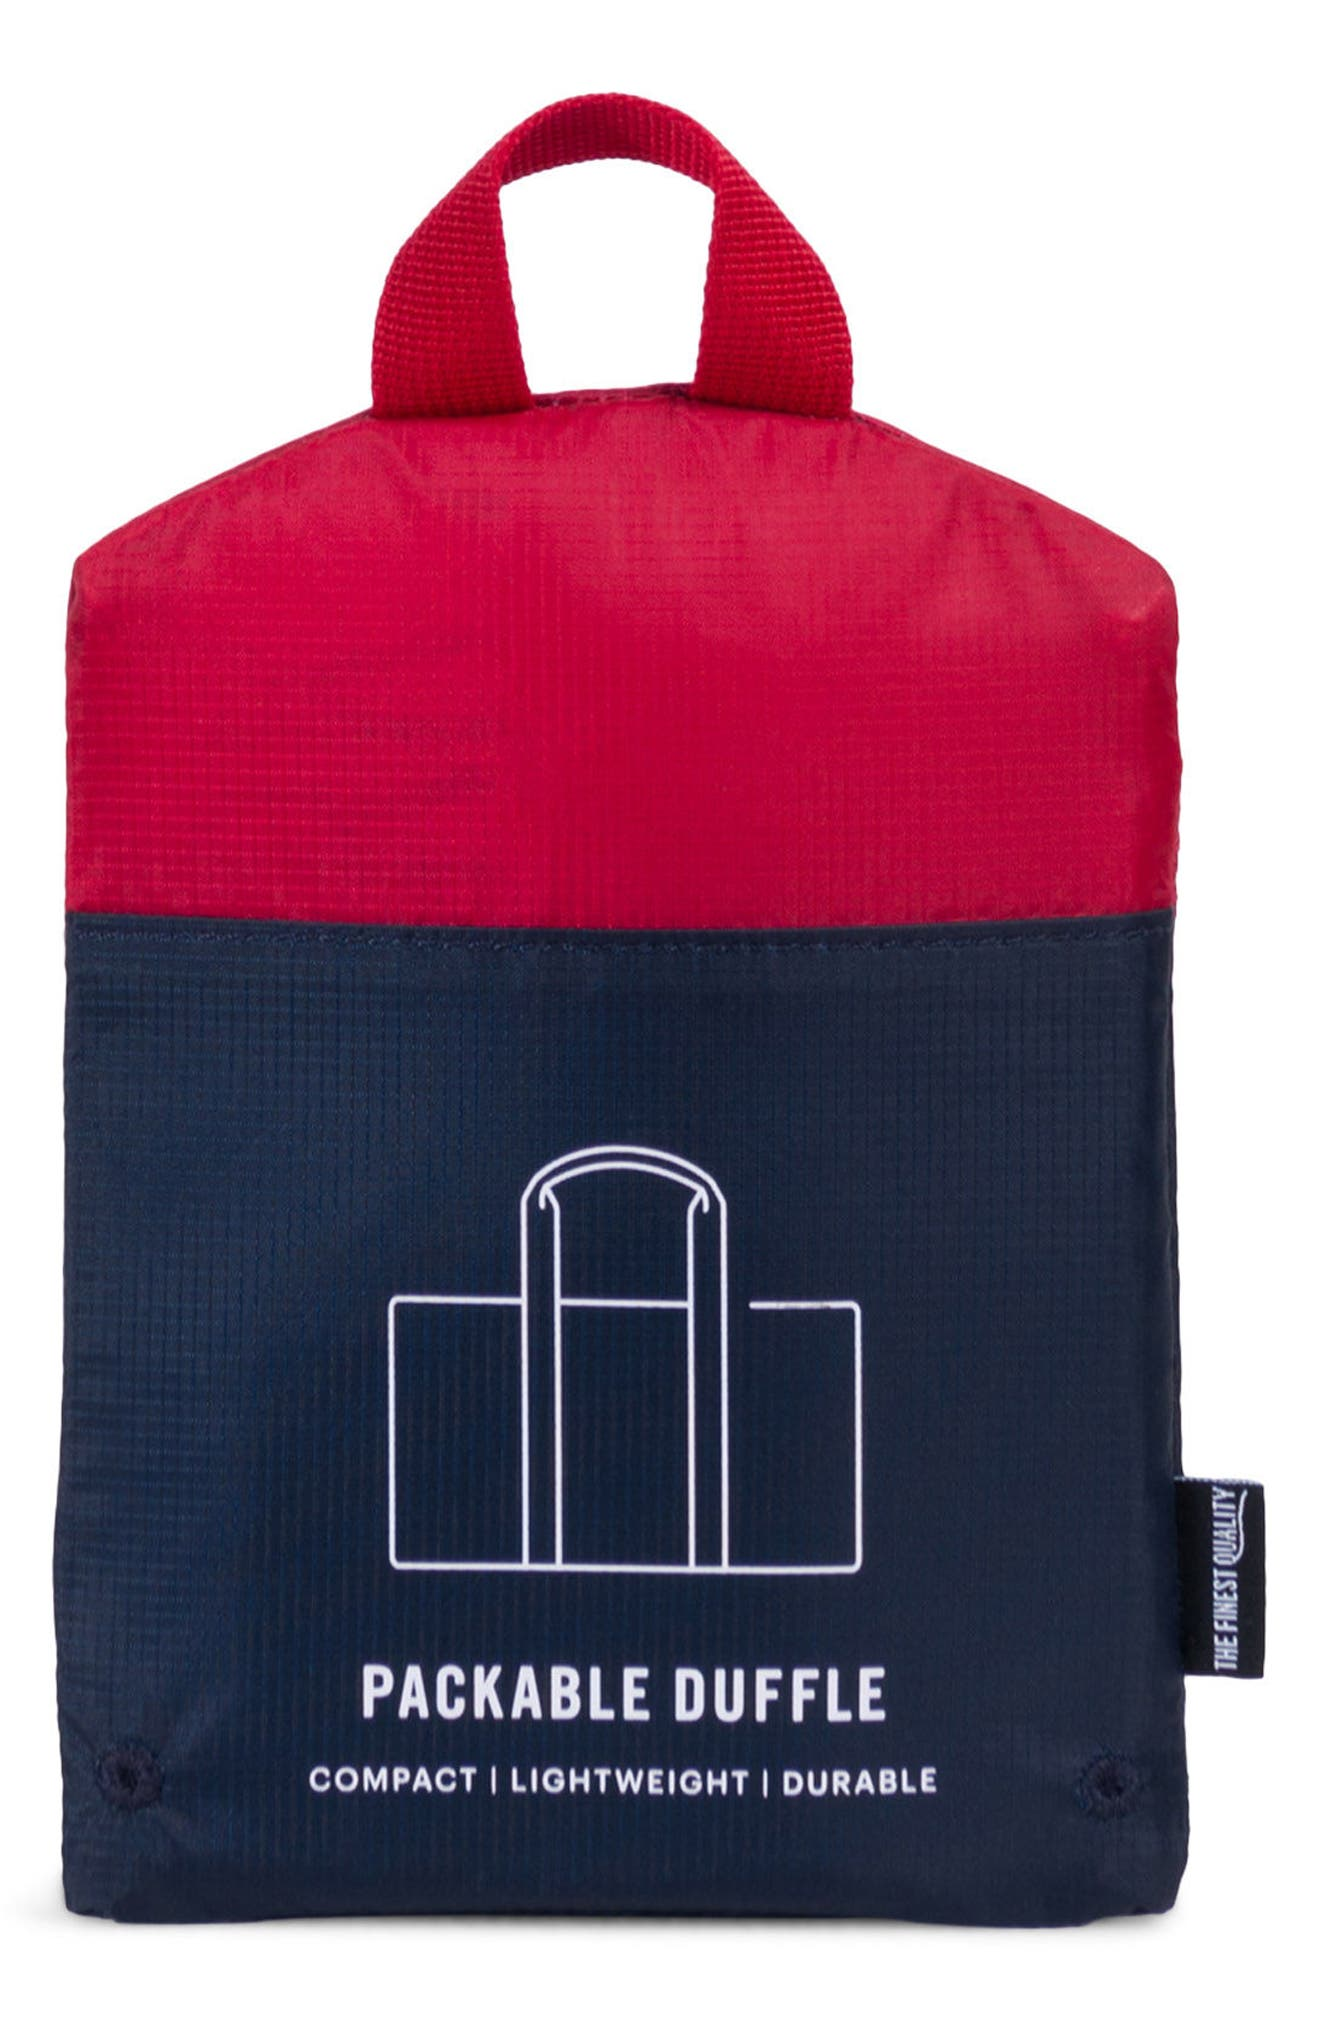 Packable Duffel Bag,                             Alternate thumbnail 3, color,                             Navy/ Red